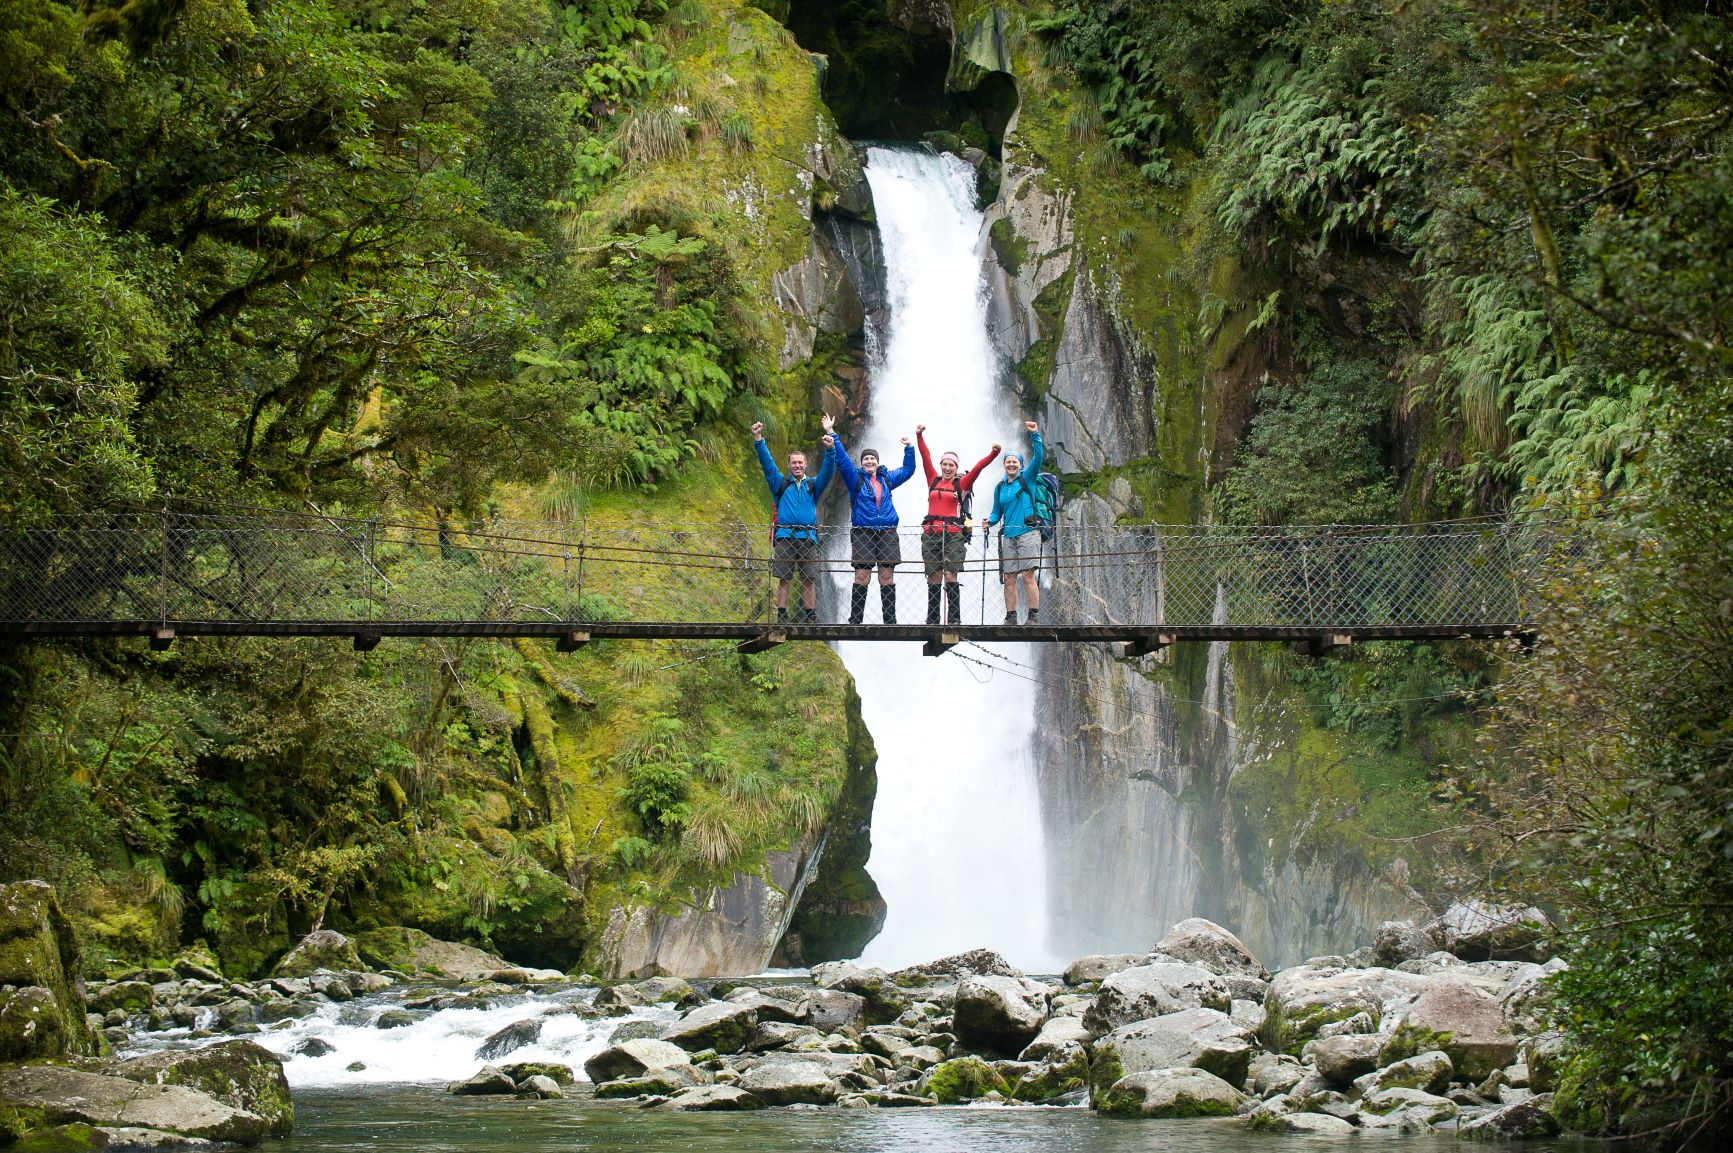 Group of people on swing bridge with water fall behind